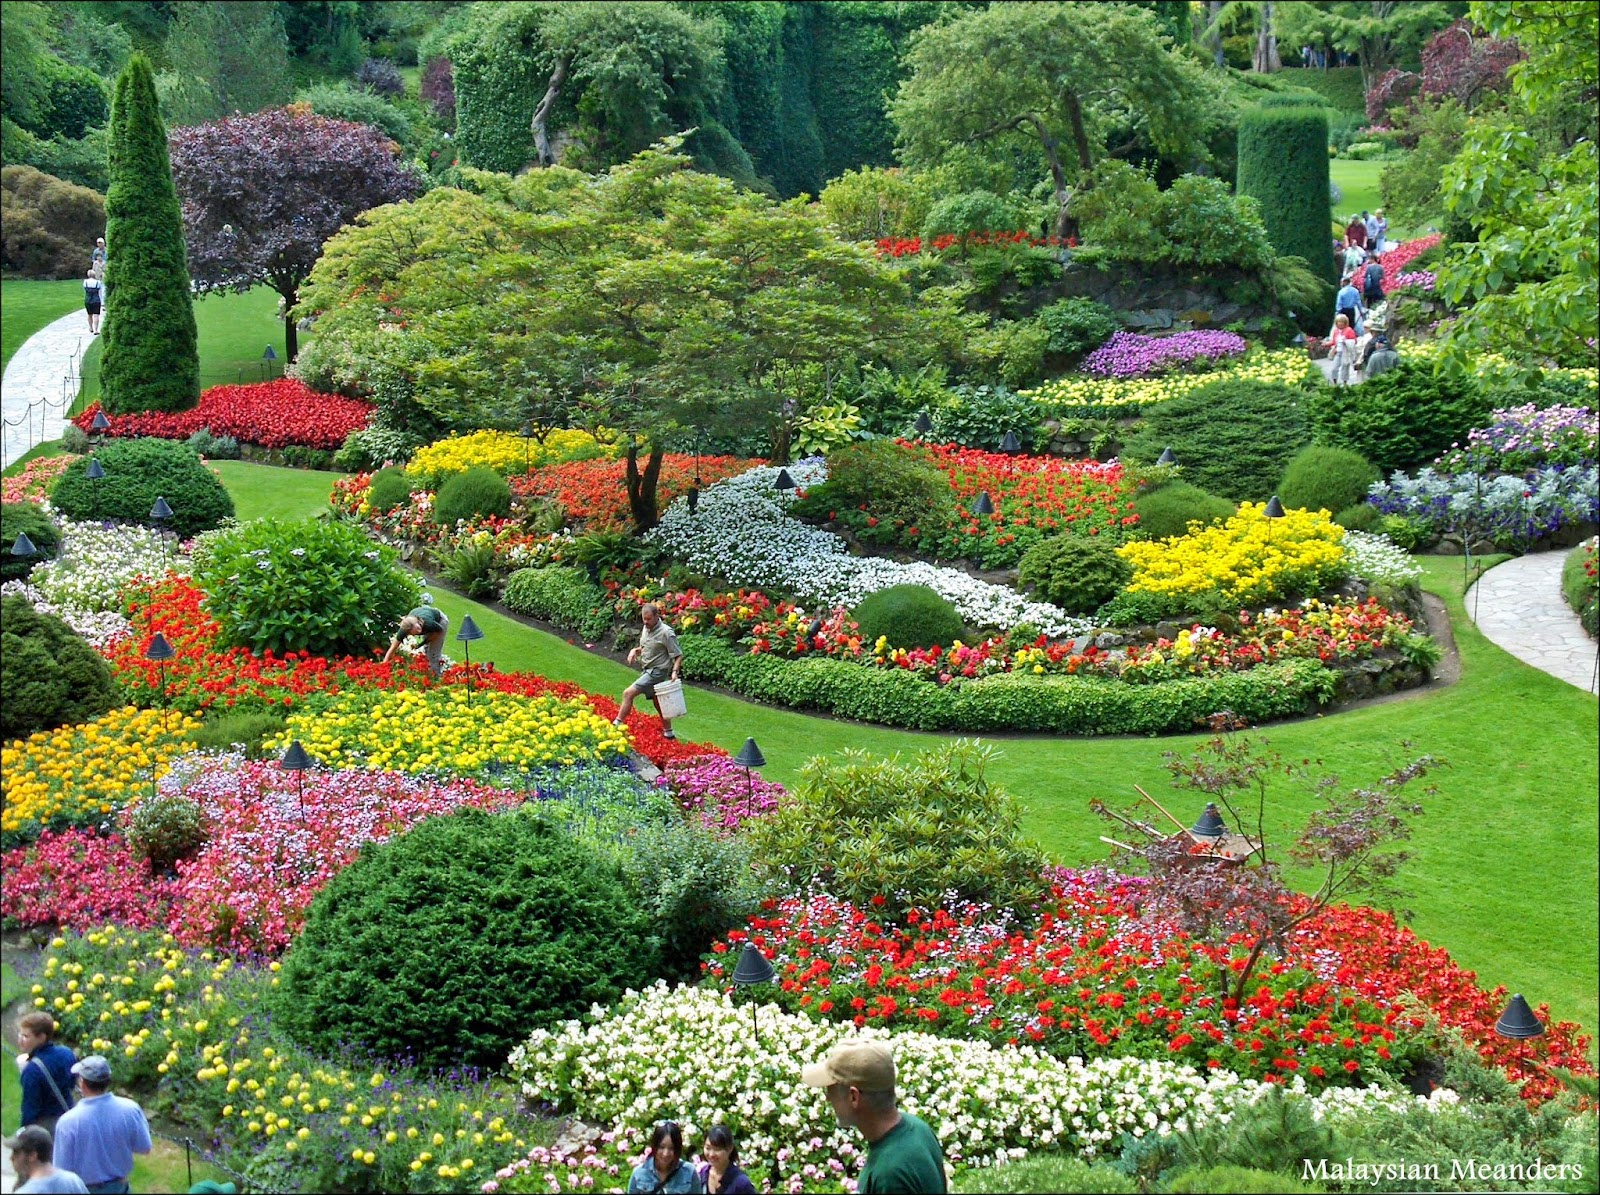 Mays Garden: Malaysian Meanders: Beauty And Renewal At Butchart Gardens